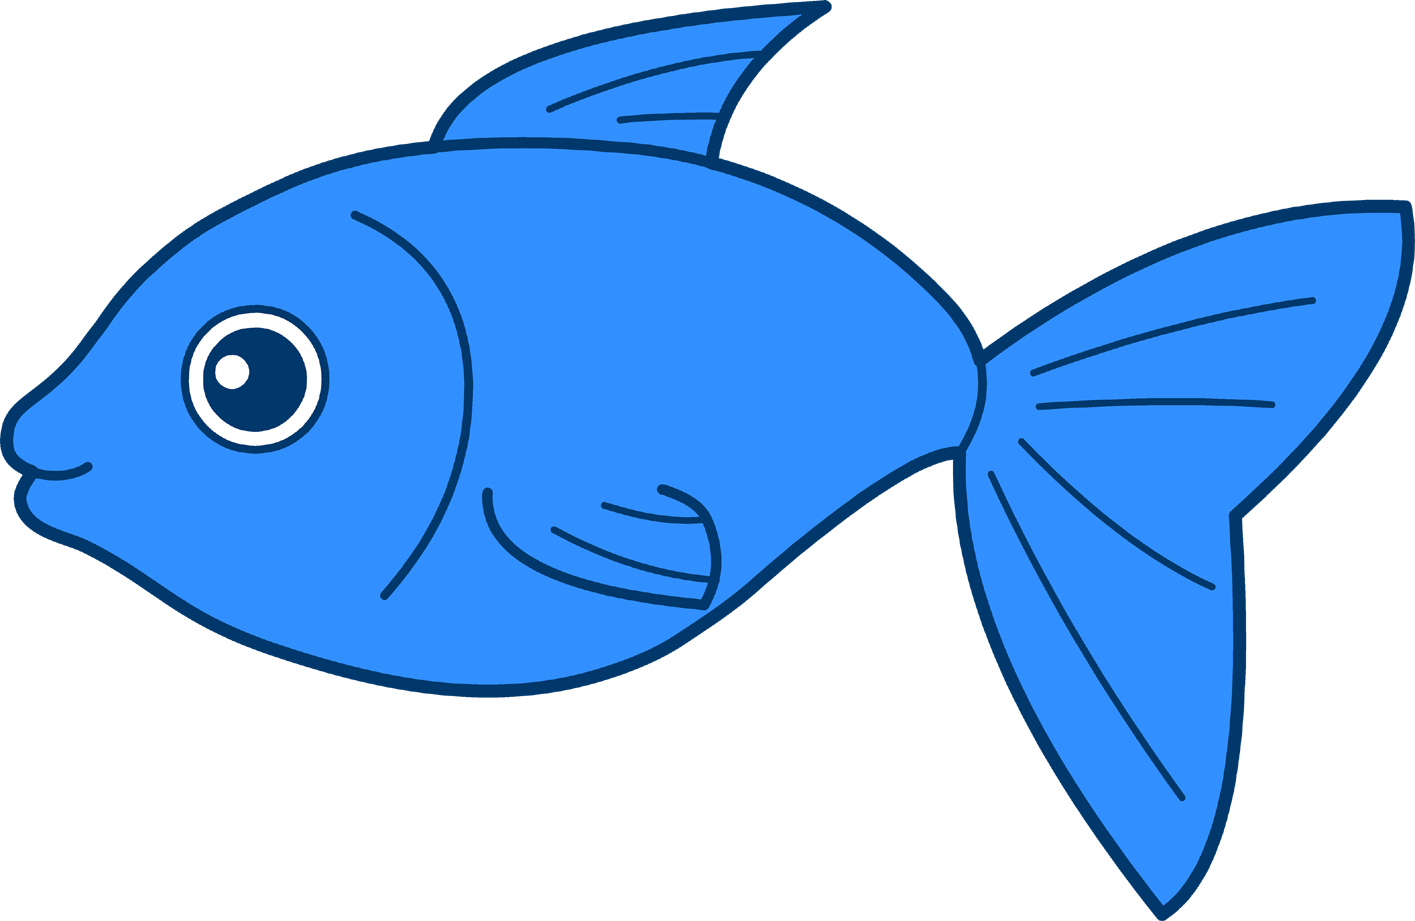 For kids at getdrawings. Eating fish clipart